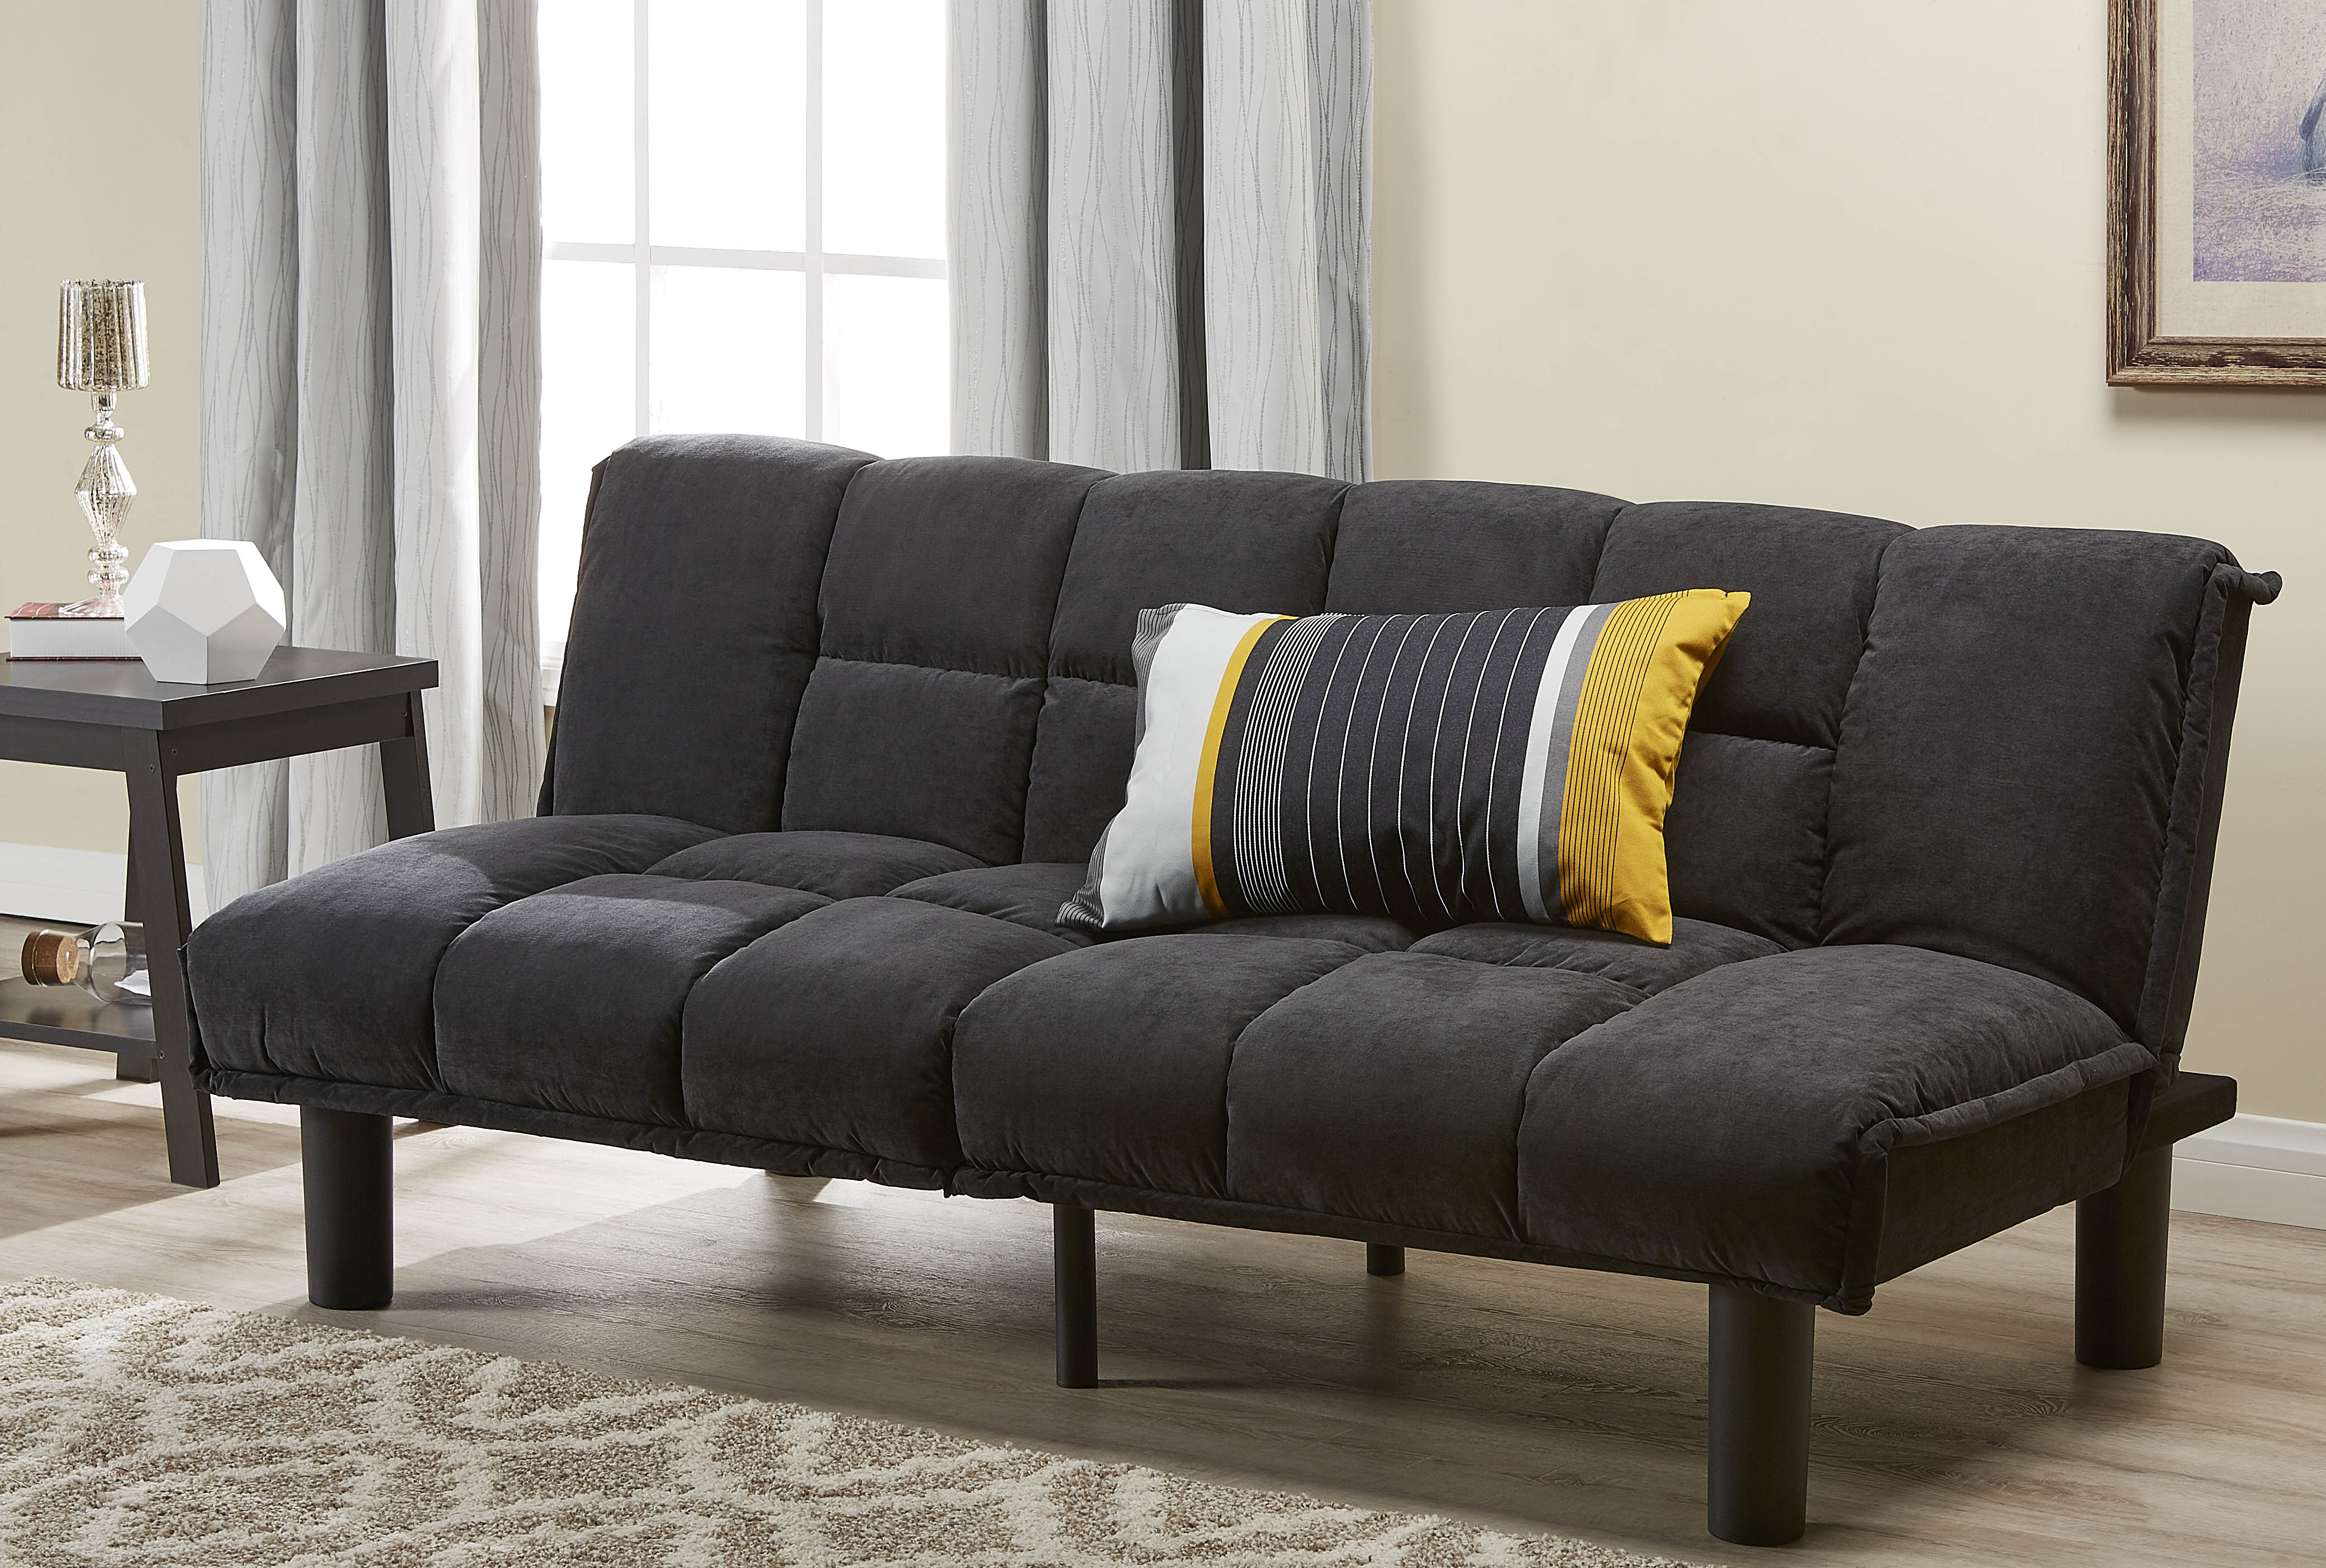 Memory Foam Futon Sofa Bed Couch Sleeper Convertible Frame ...